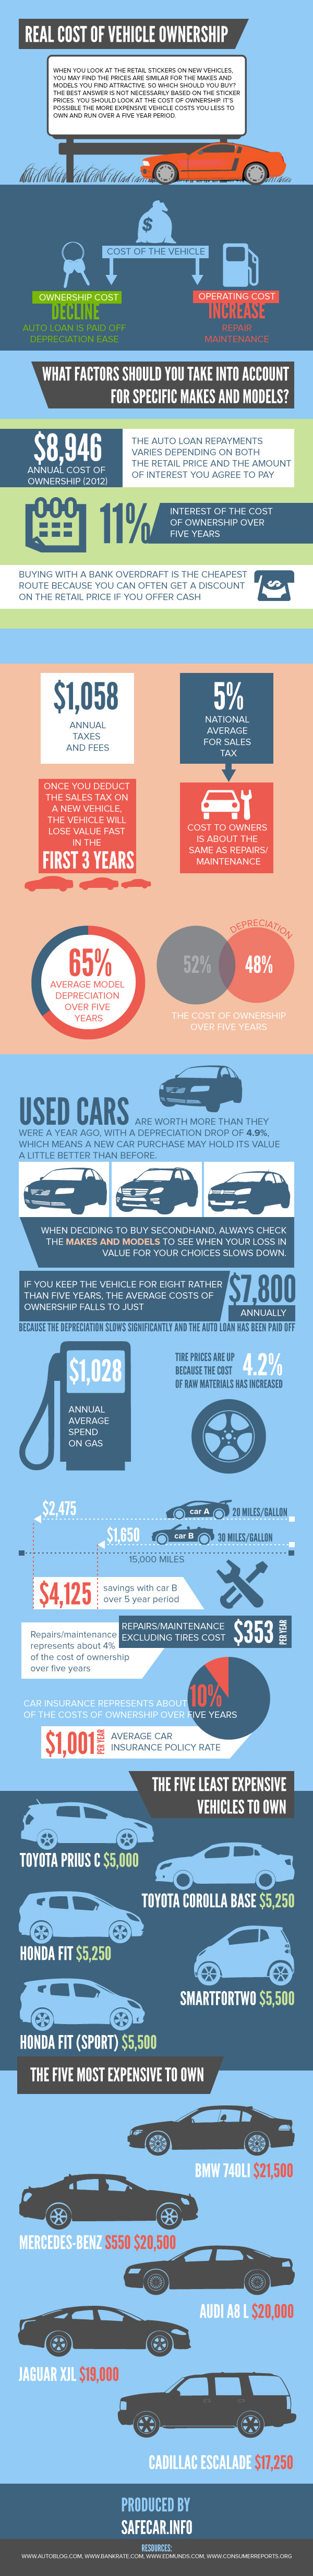 Real-cost-of-vehicle-ownership